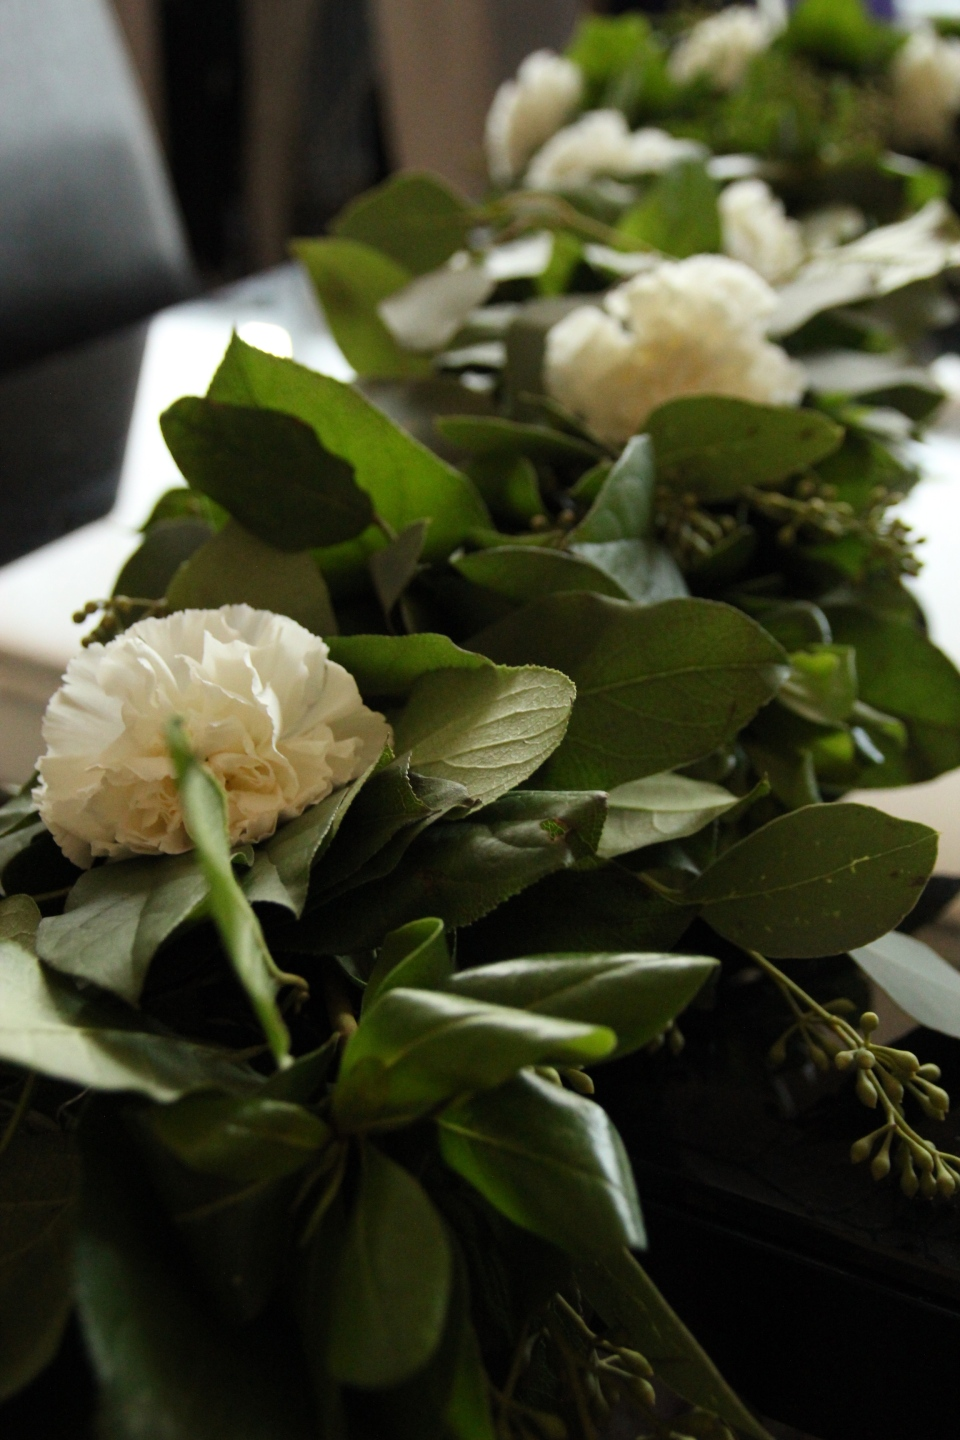 Handmade garland of greenery & white carnations